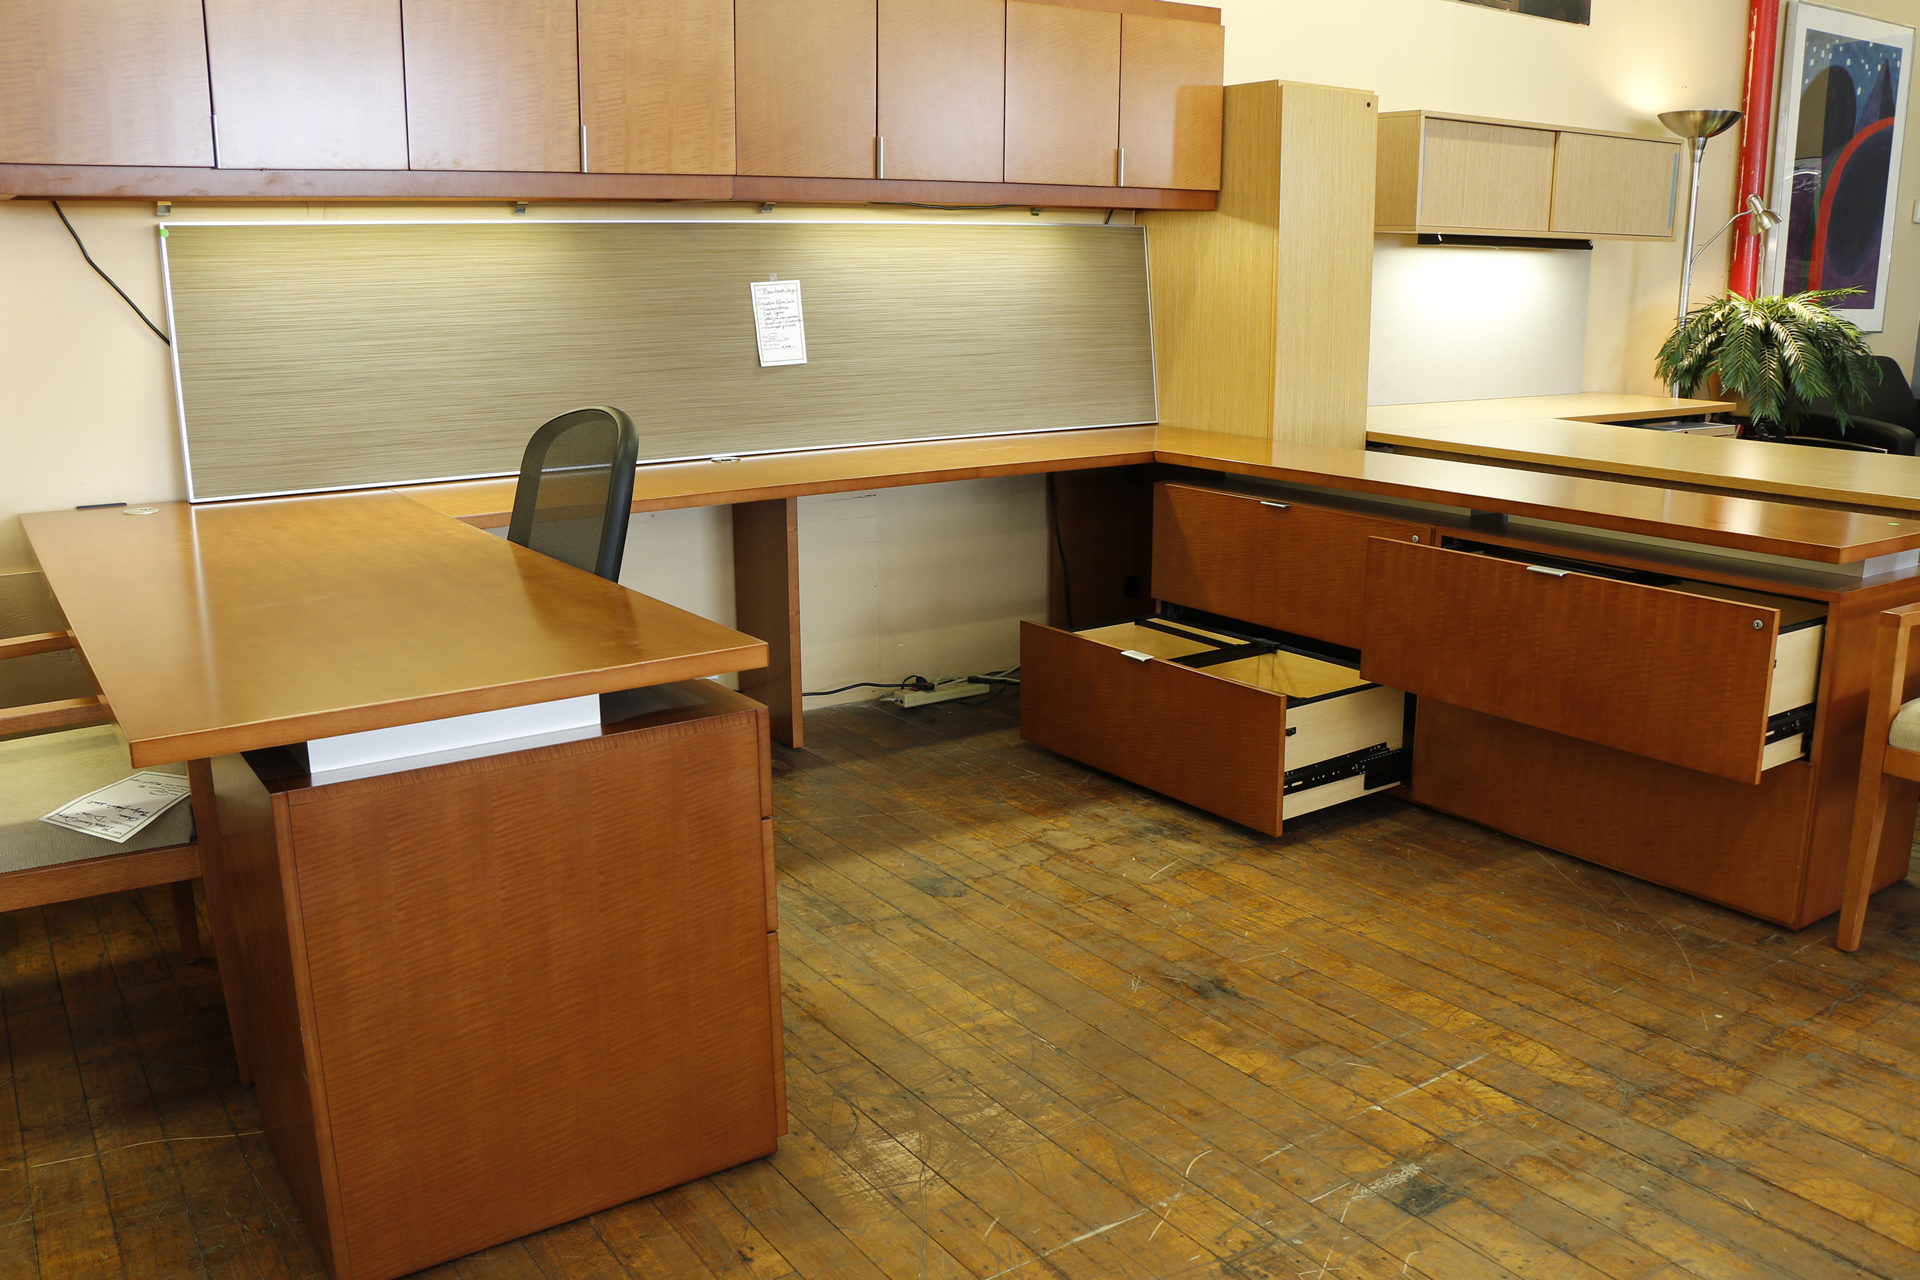 peartreeofficefurniture_peartreeofficefurniture_mg_4179.jpg